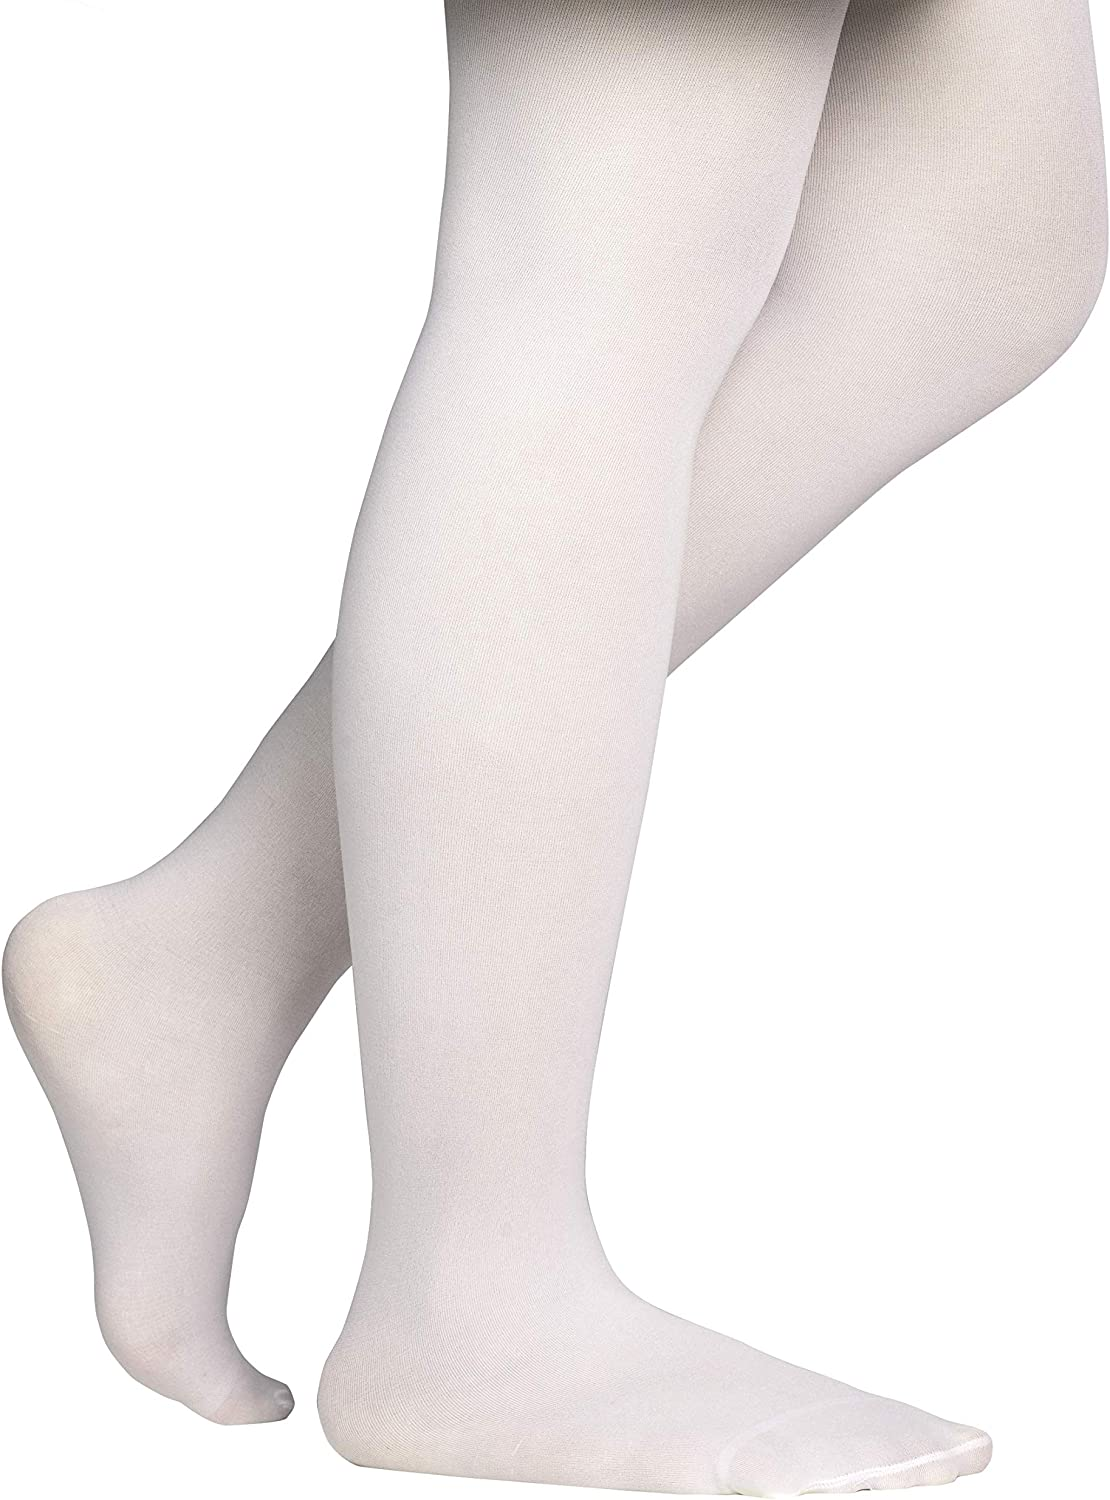 Dancina Girls Students Footed Ballet Dance School Tights Toddler//Little Girls//Big Girls